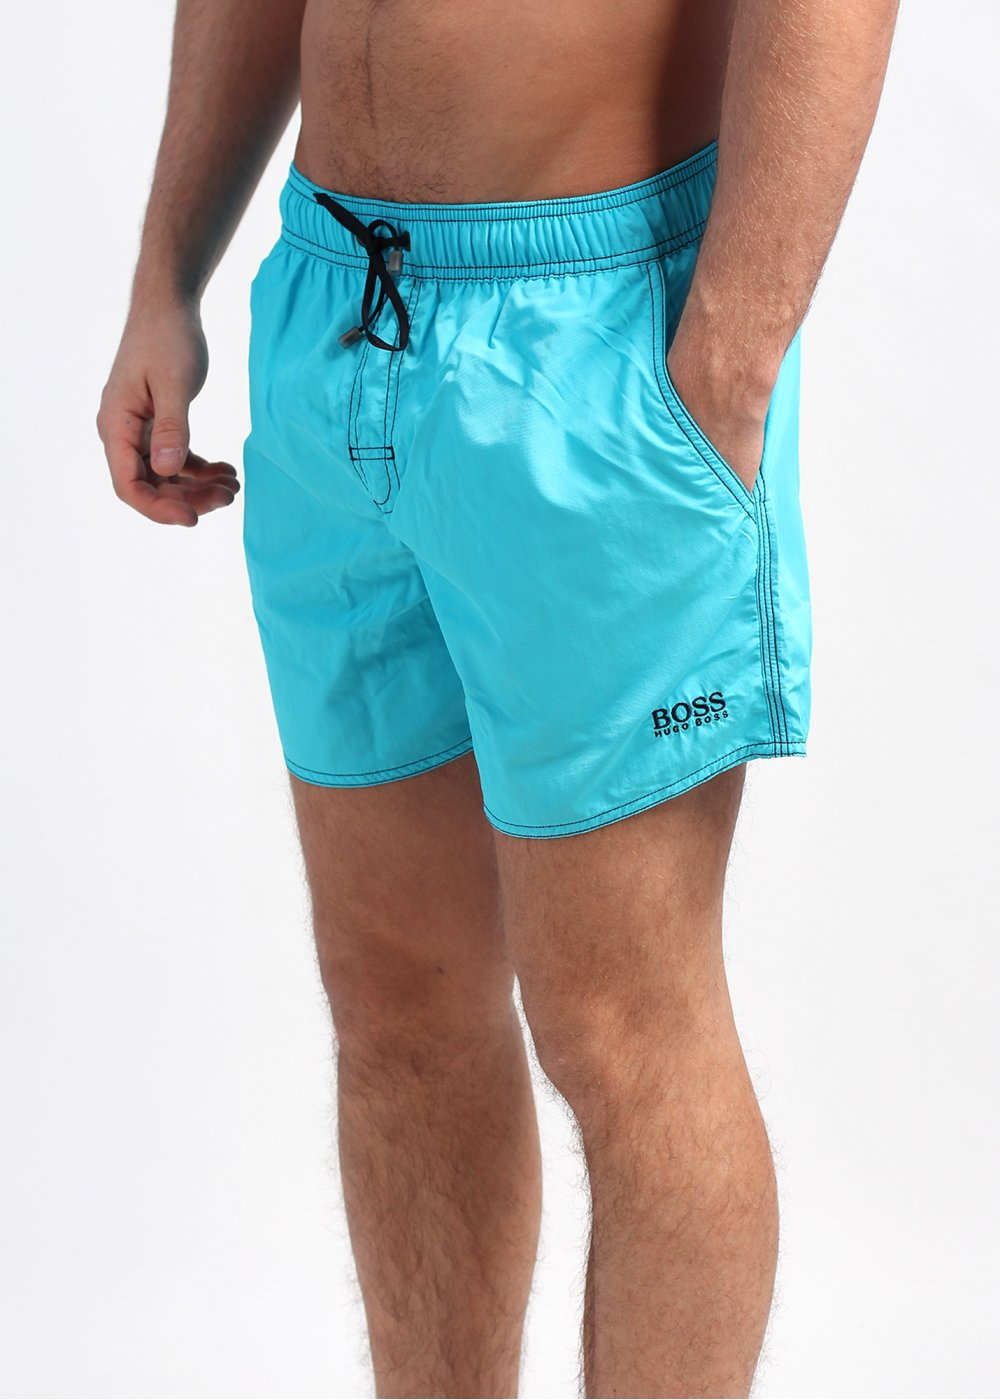 9d201c47e61b Hugo Boss Black Lobster Swim Shorts - Light Blue